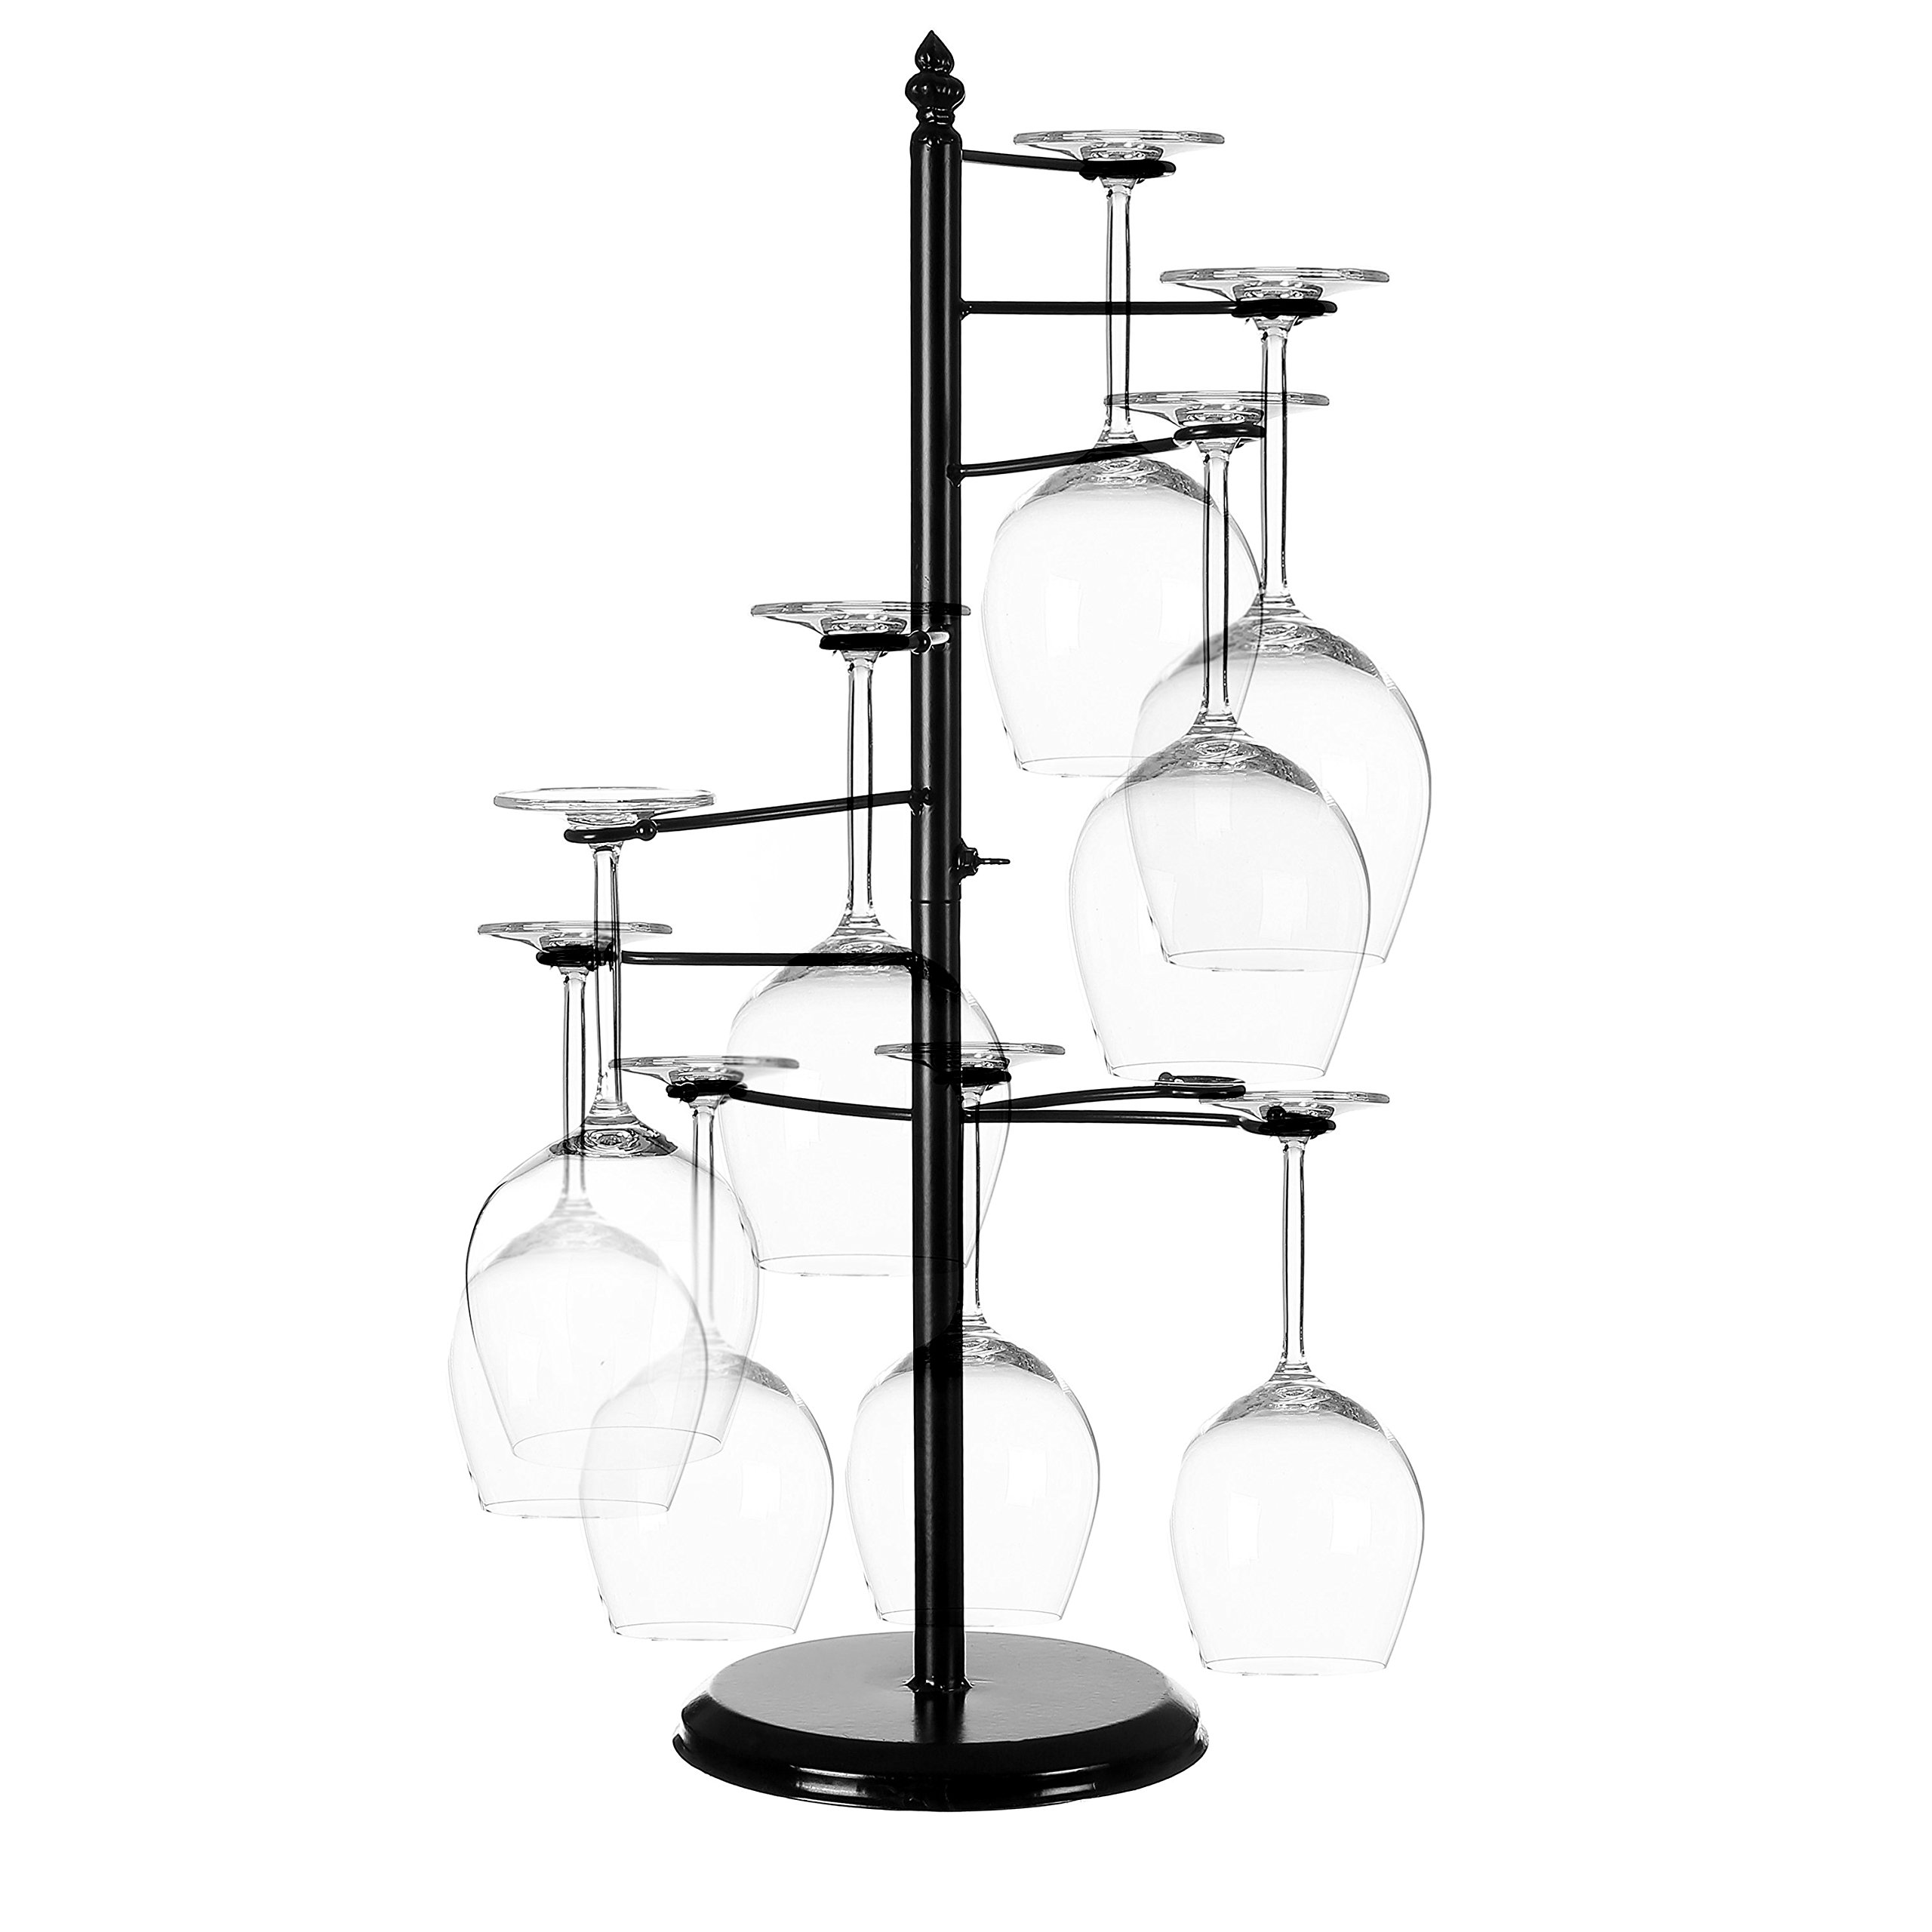 MyGift Freestanding Tabletop Stemware Rack / Spiraling 10 Wine Glass Holder, Black by MyGift